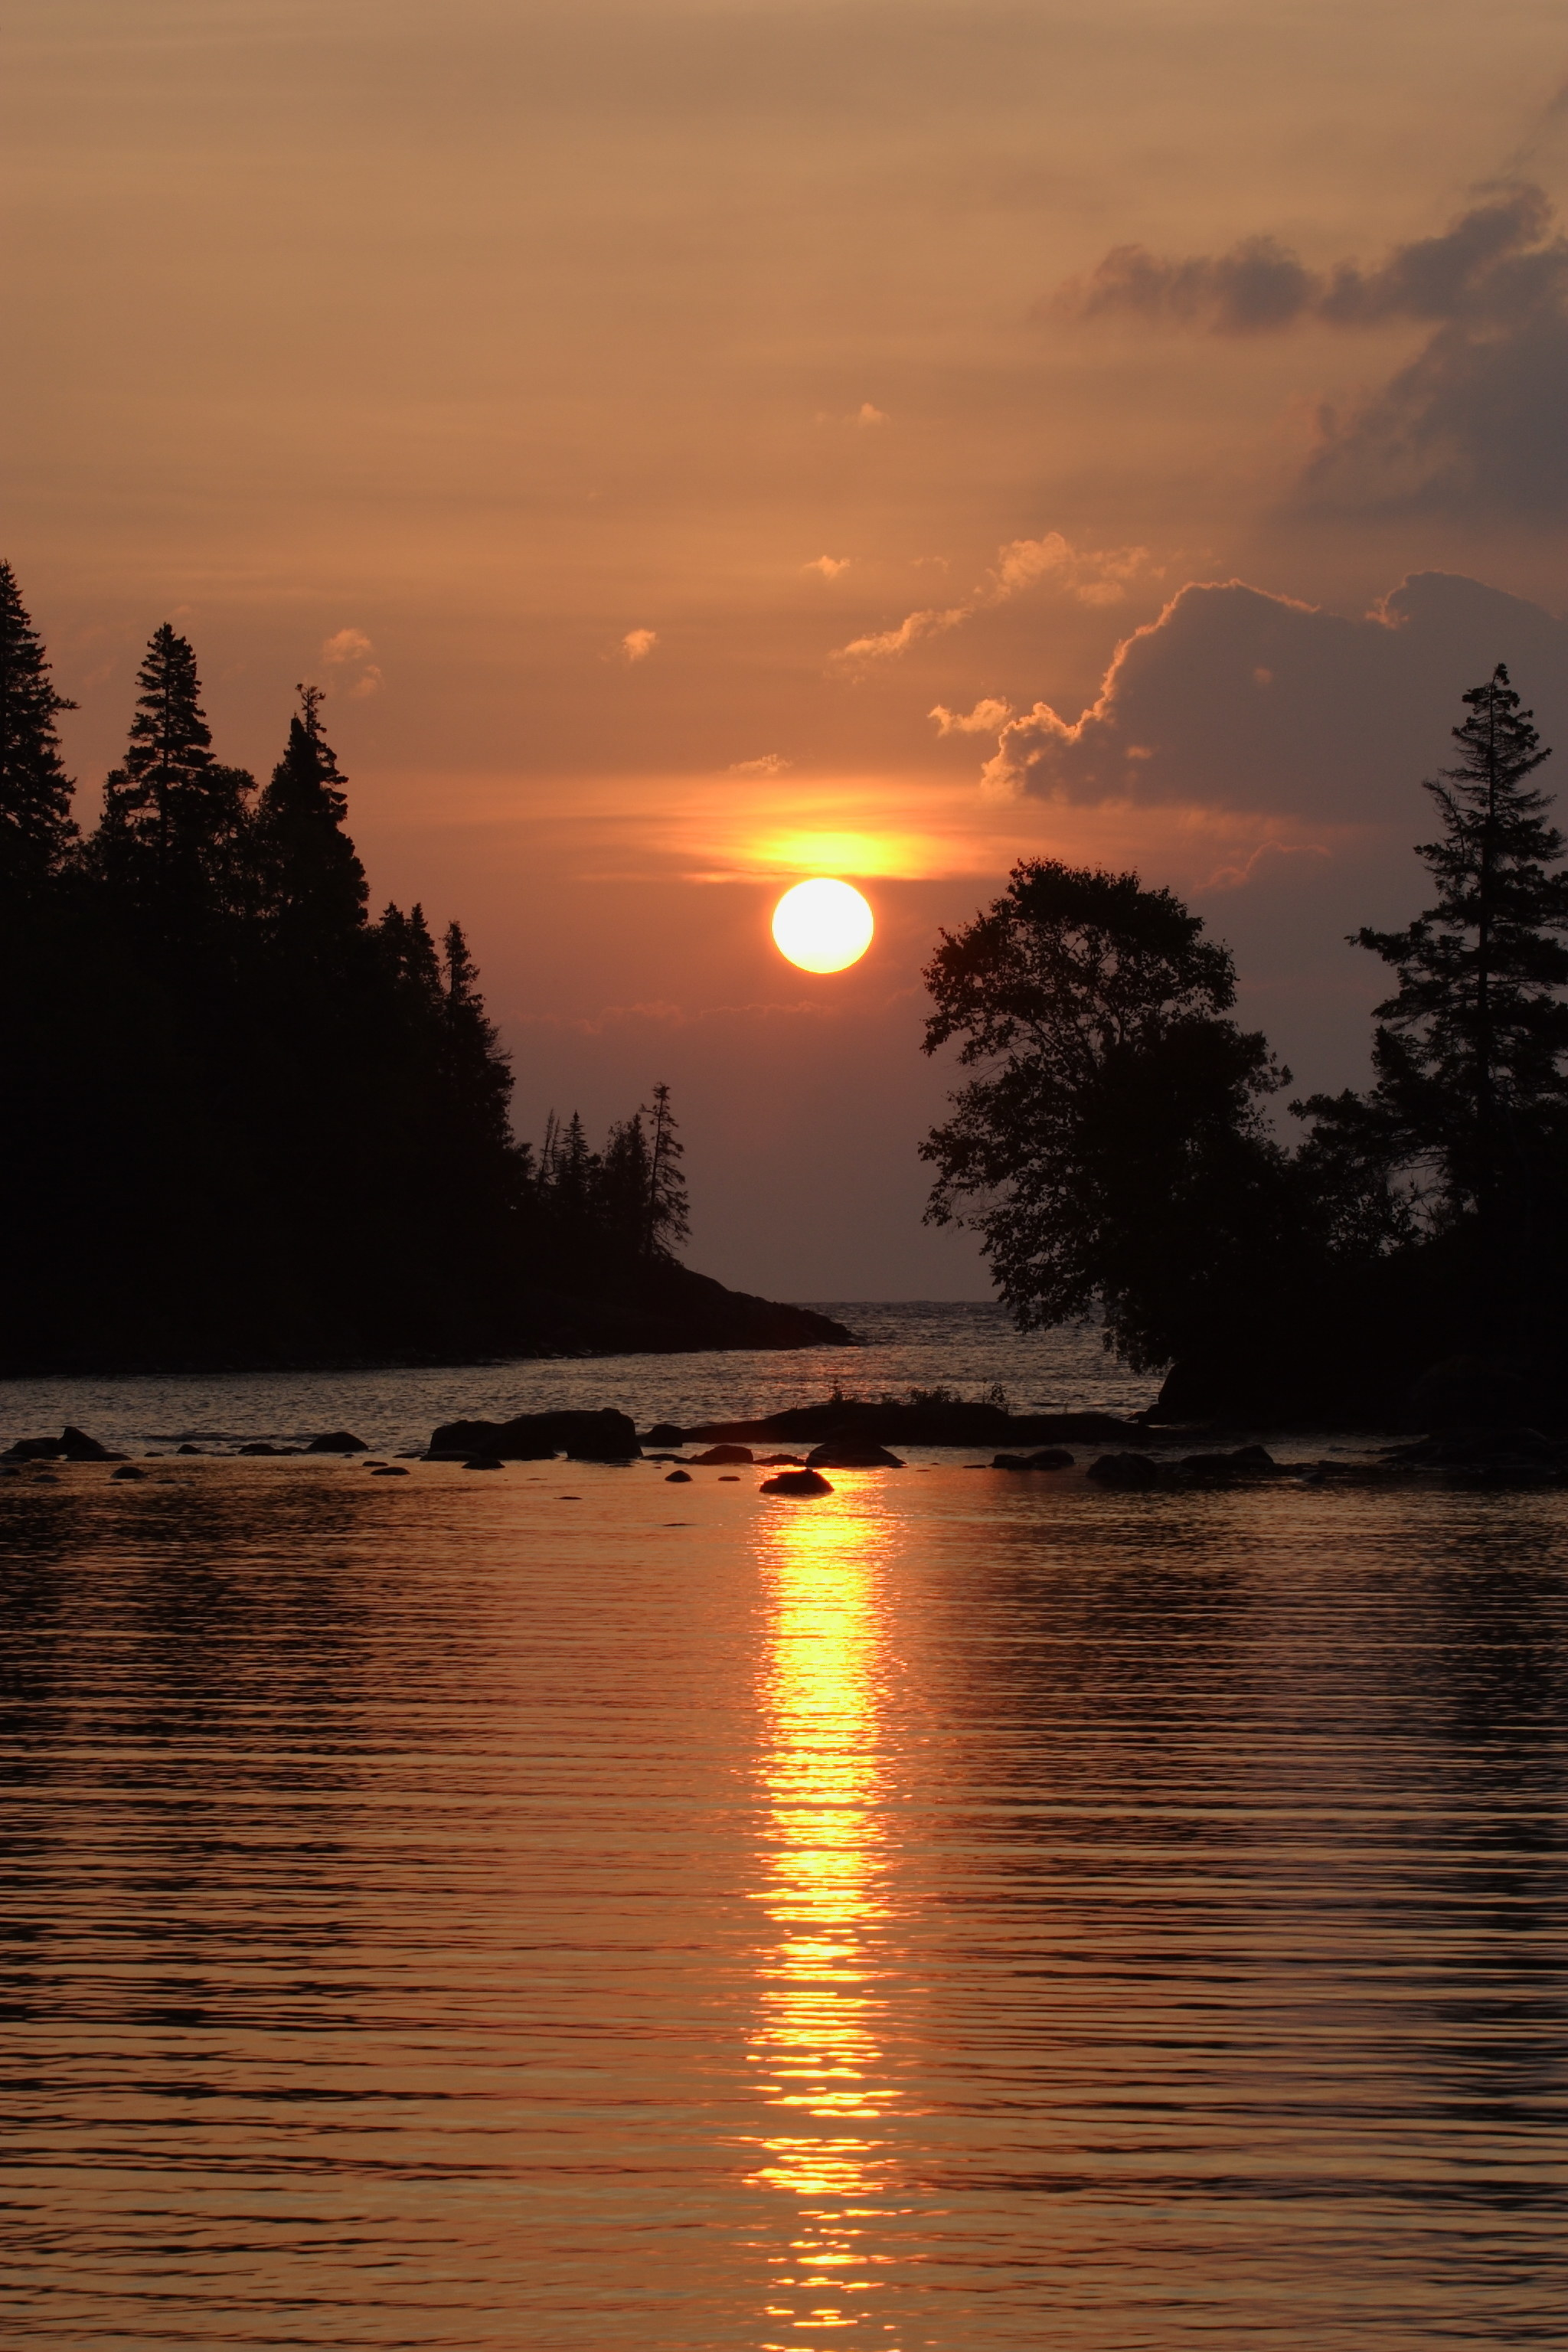 The sun setting over a lake in Isle Royale National Park.